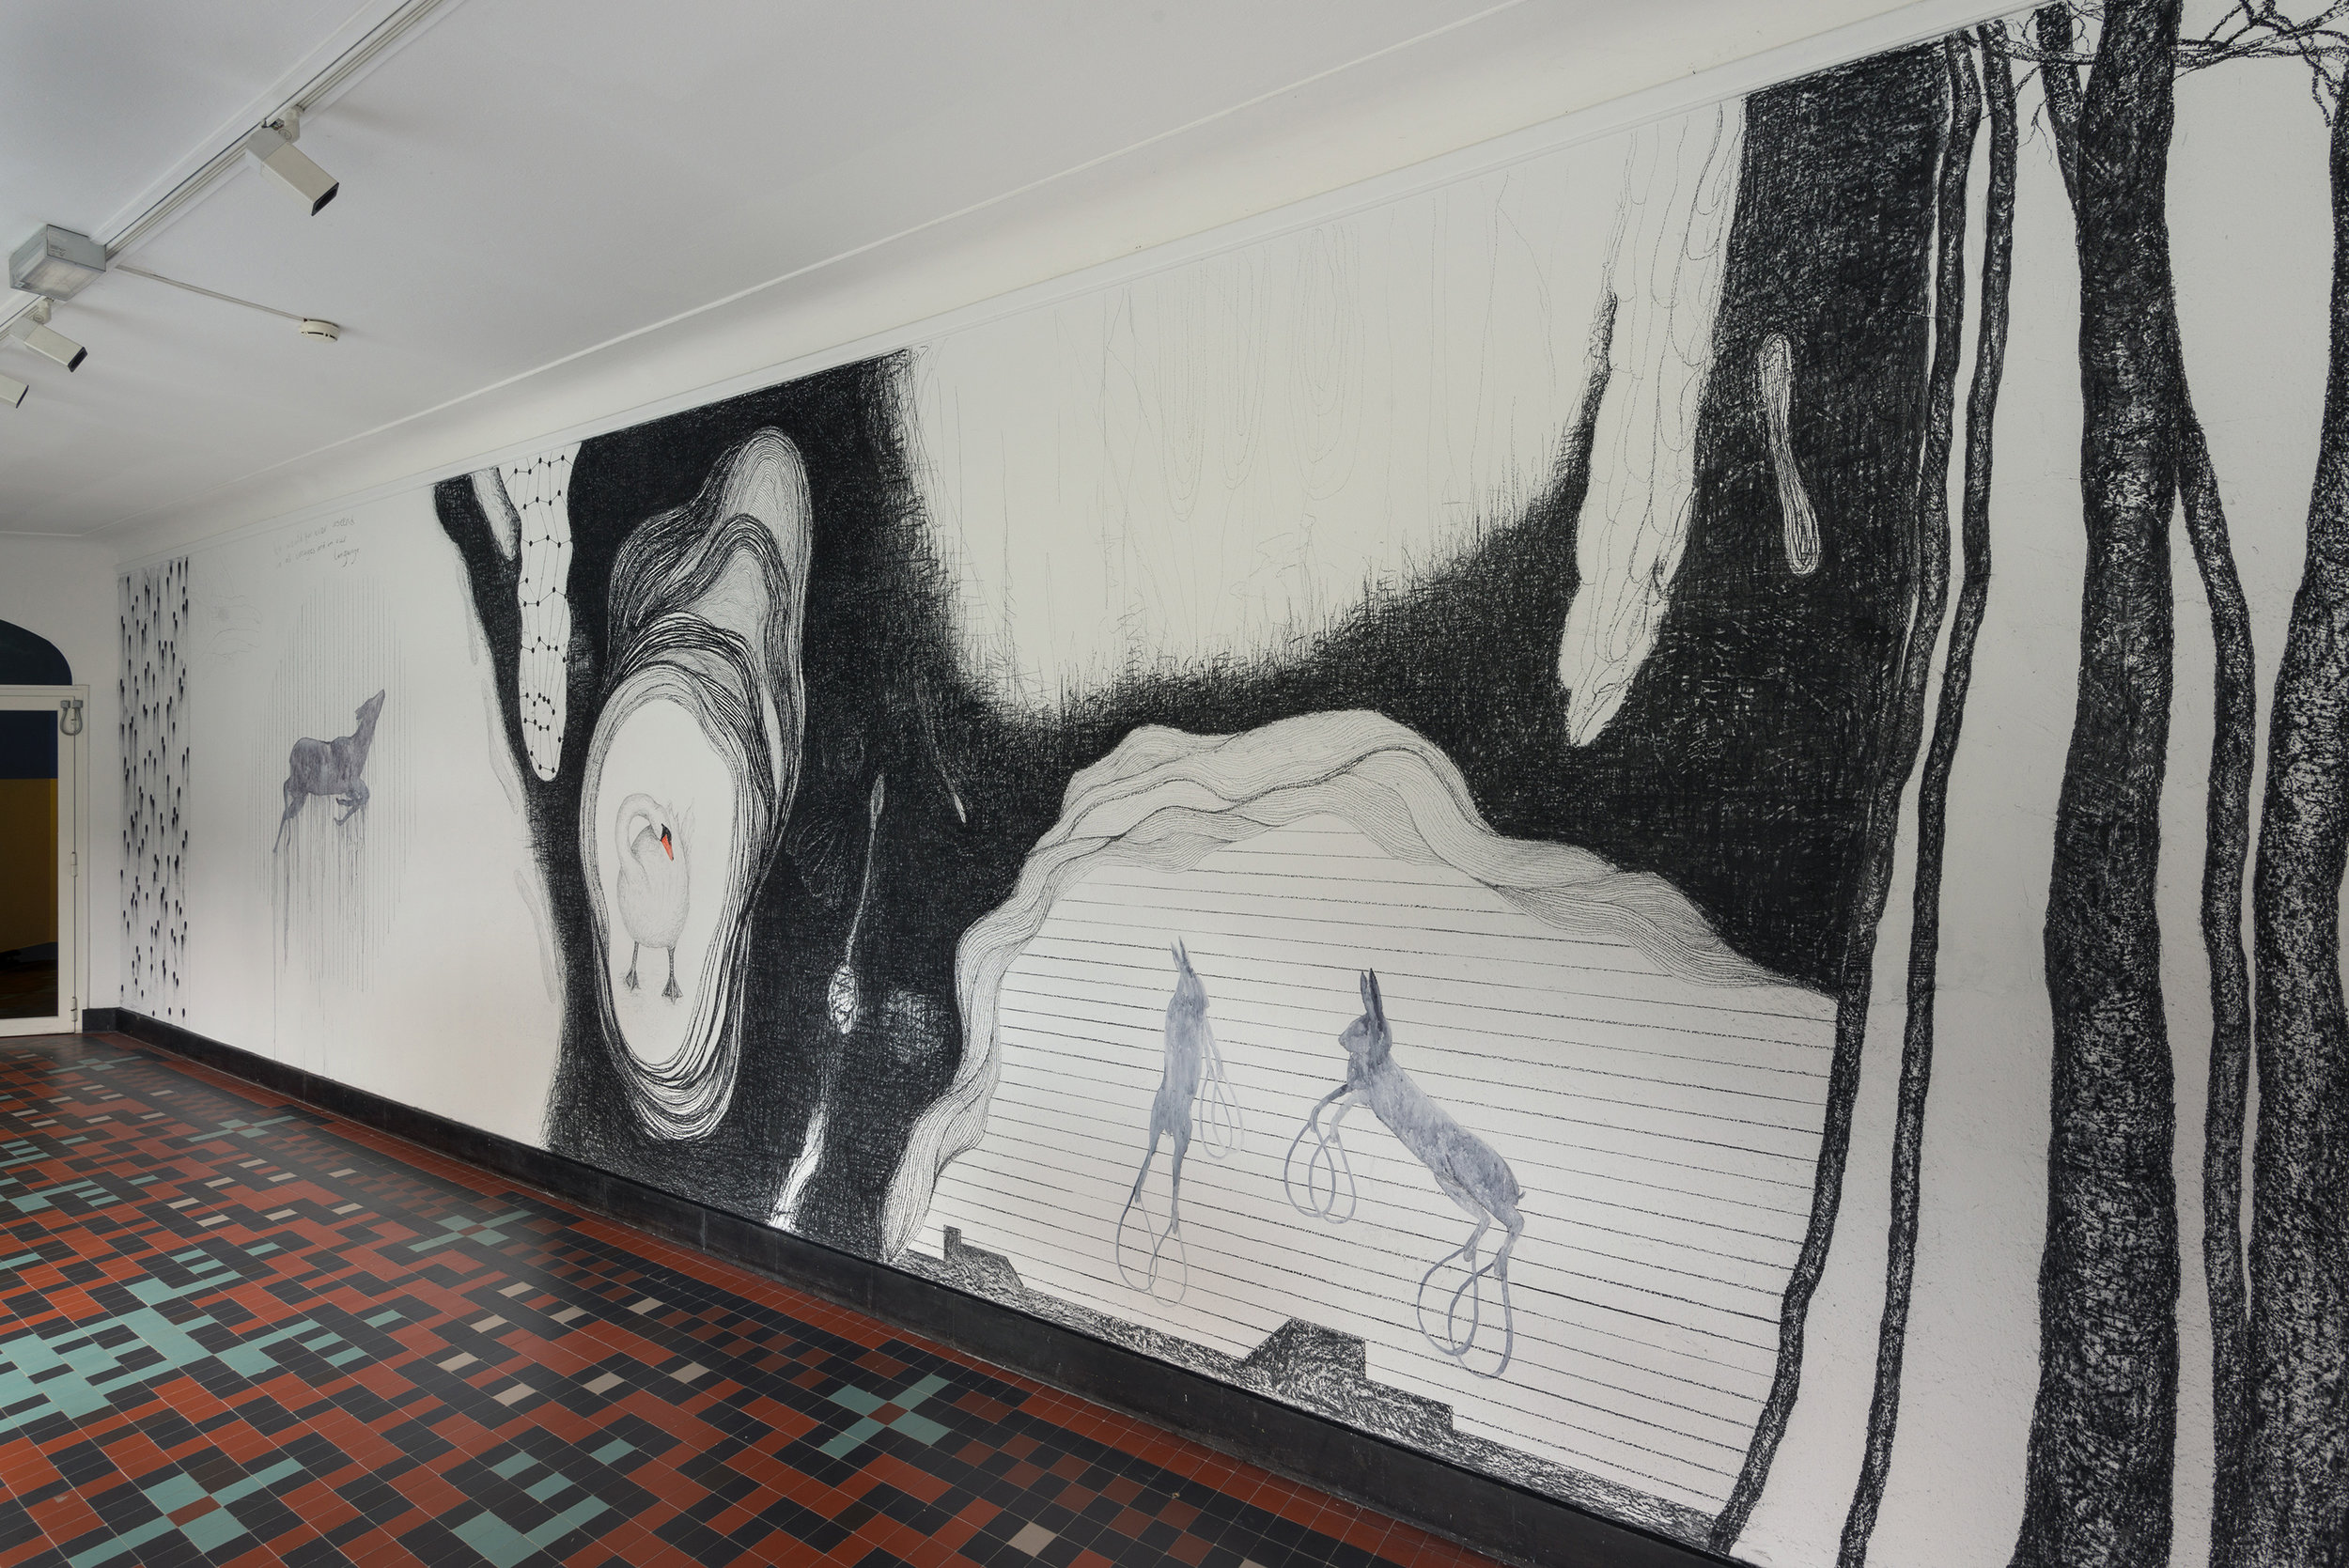 Untitled, walldrawing, 3,2 x 10 meters, charcoal and watercolor, 2017